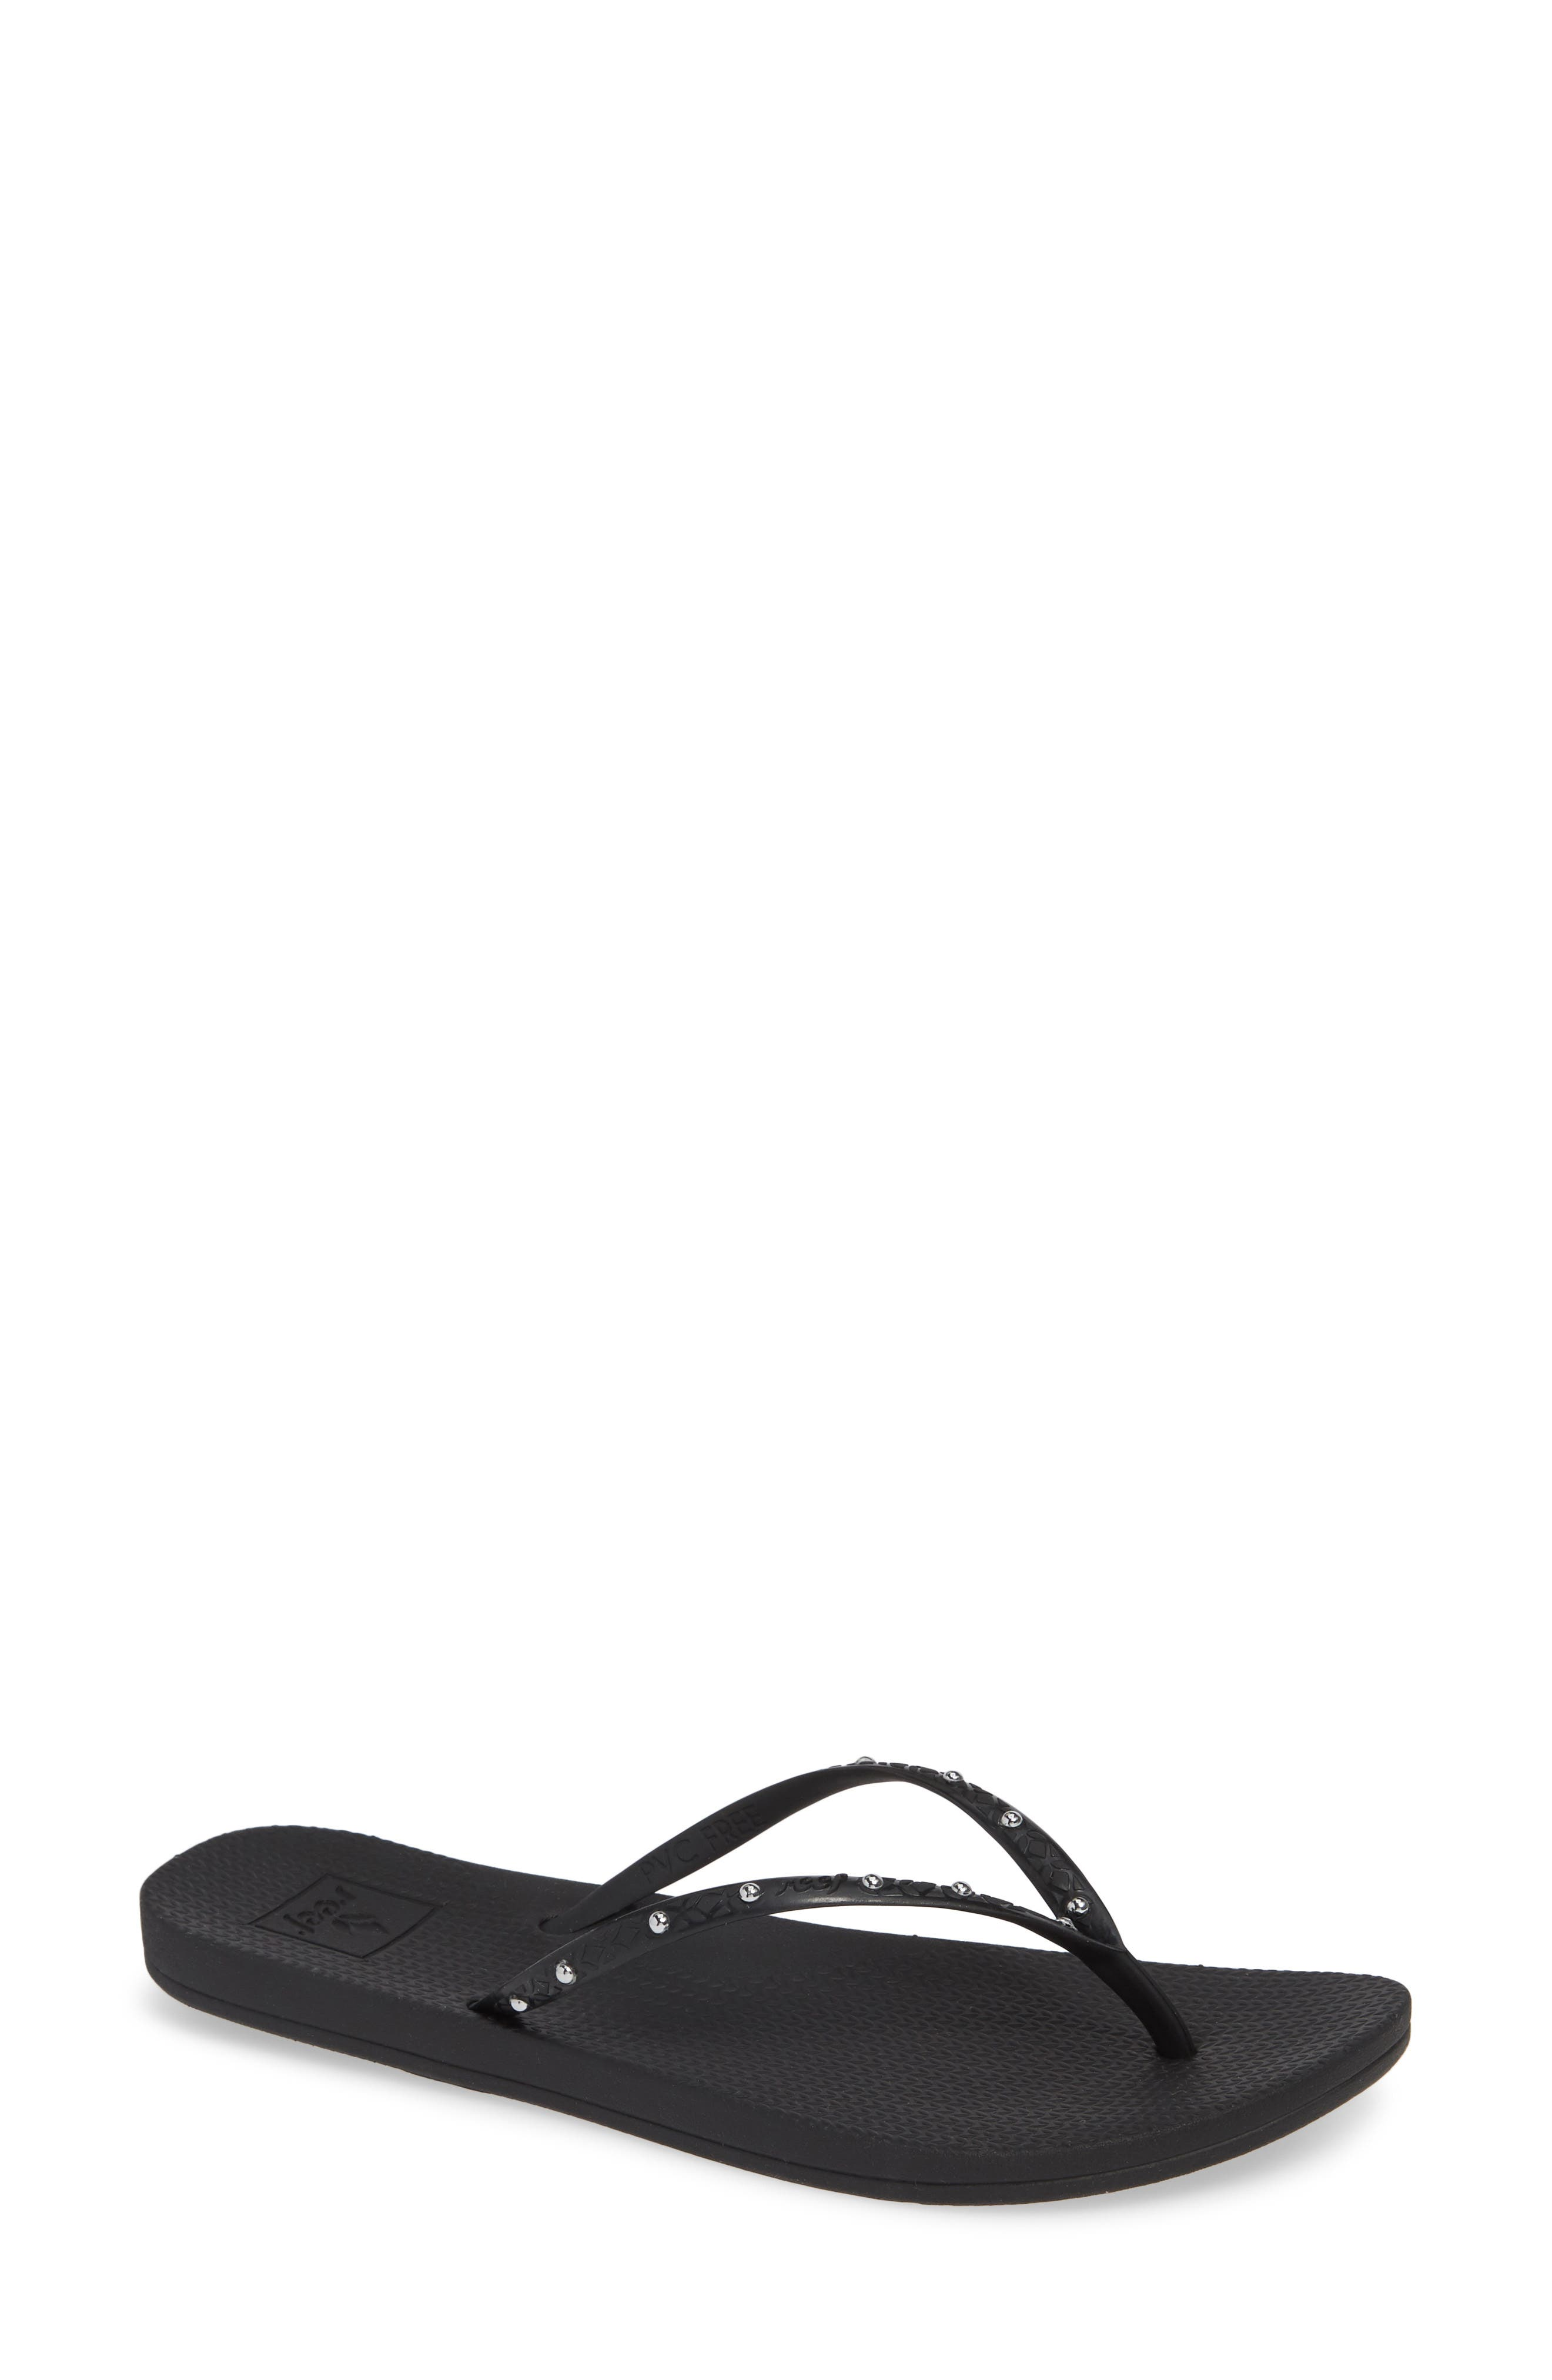 Escape Lux Studded Flip Flop, Main, color, BLACK/ SILVER